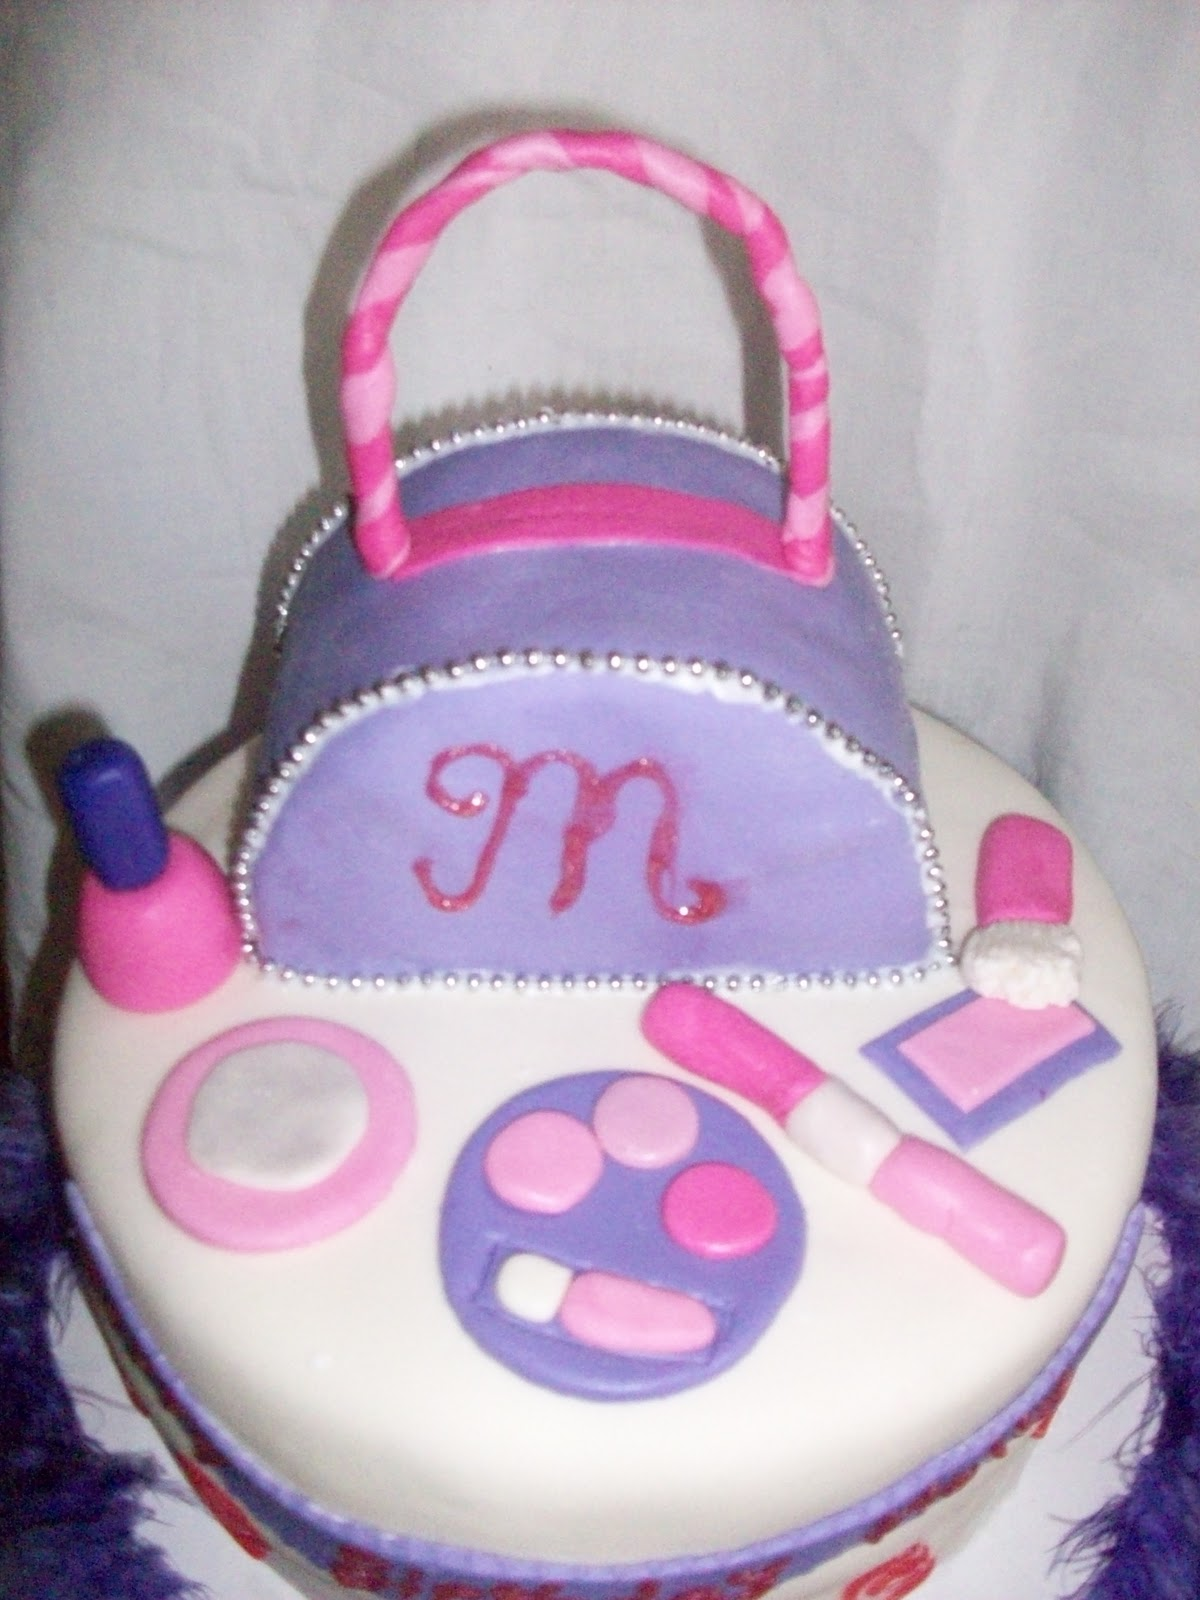 Birthday Cake Pics For Little Girl : Aimee s Cakes: Little Girl Purse and Make Up Cake